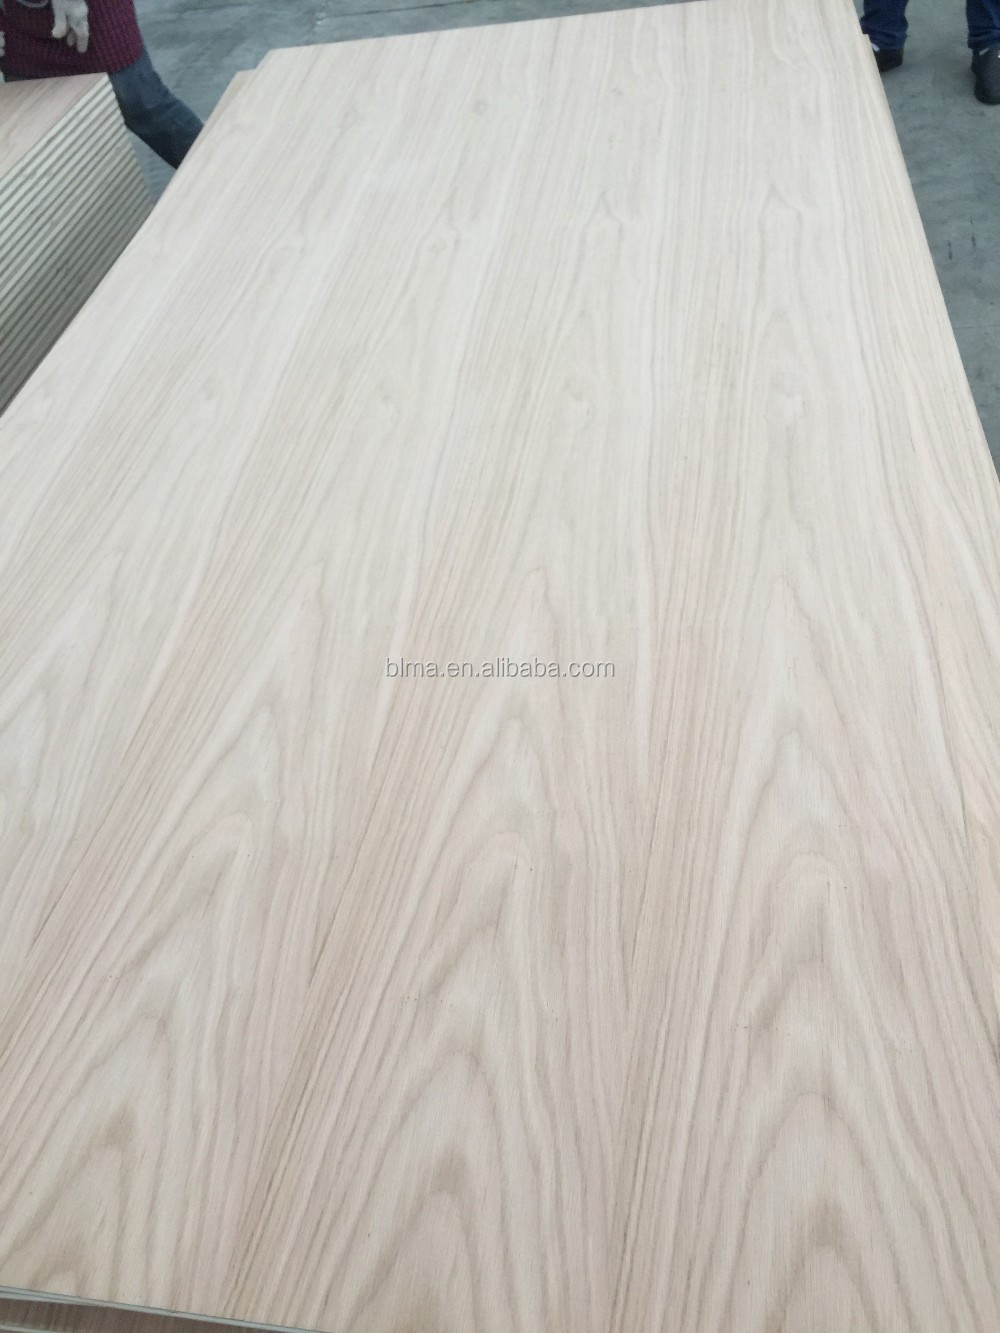 FSC certification high quality sandwich plywood for America market